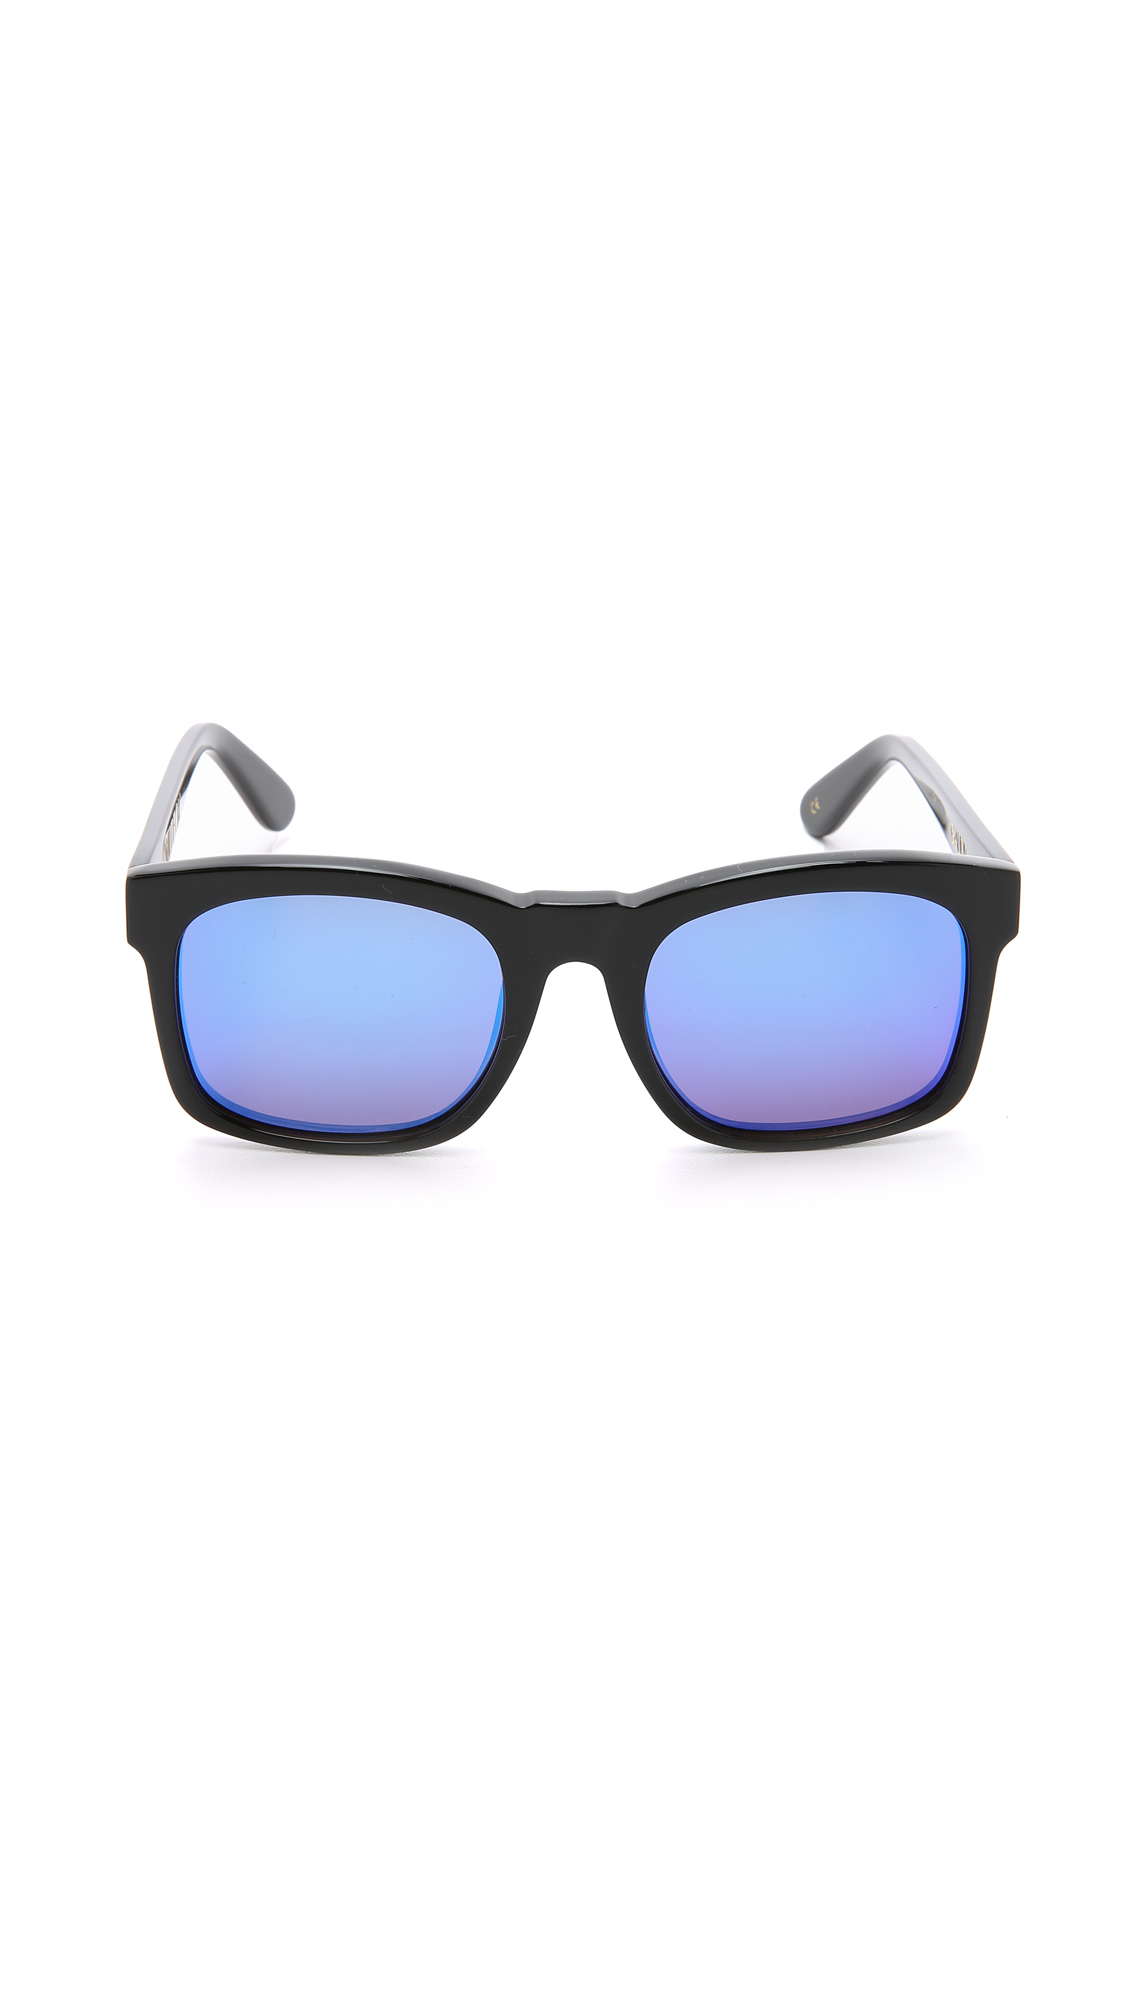 3aa8eda6ff Wildfox Gaudy Deluxe Sunglasses - Black Blue Mirror in Black - Lyst